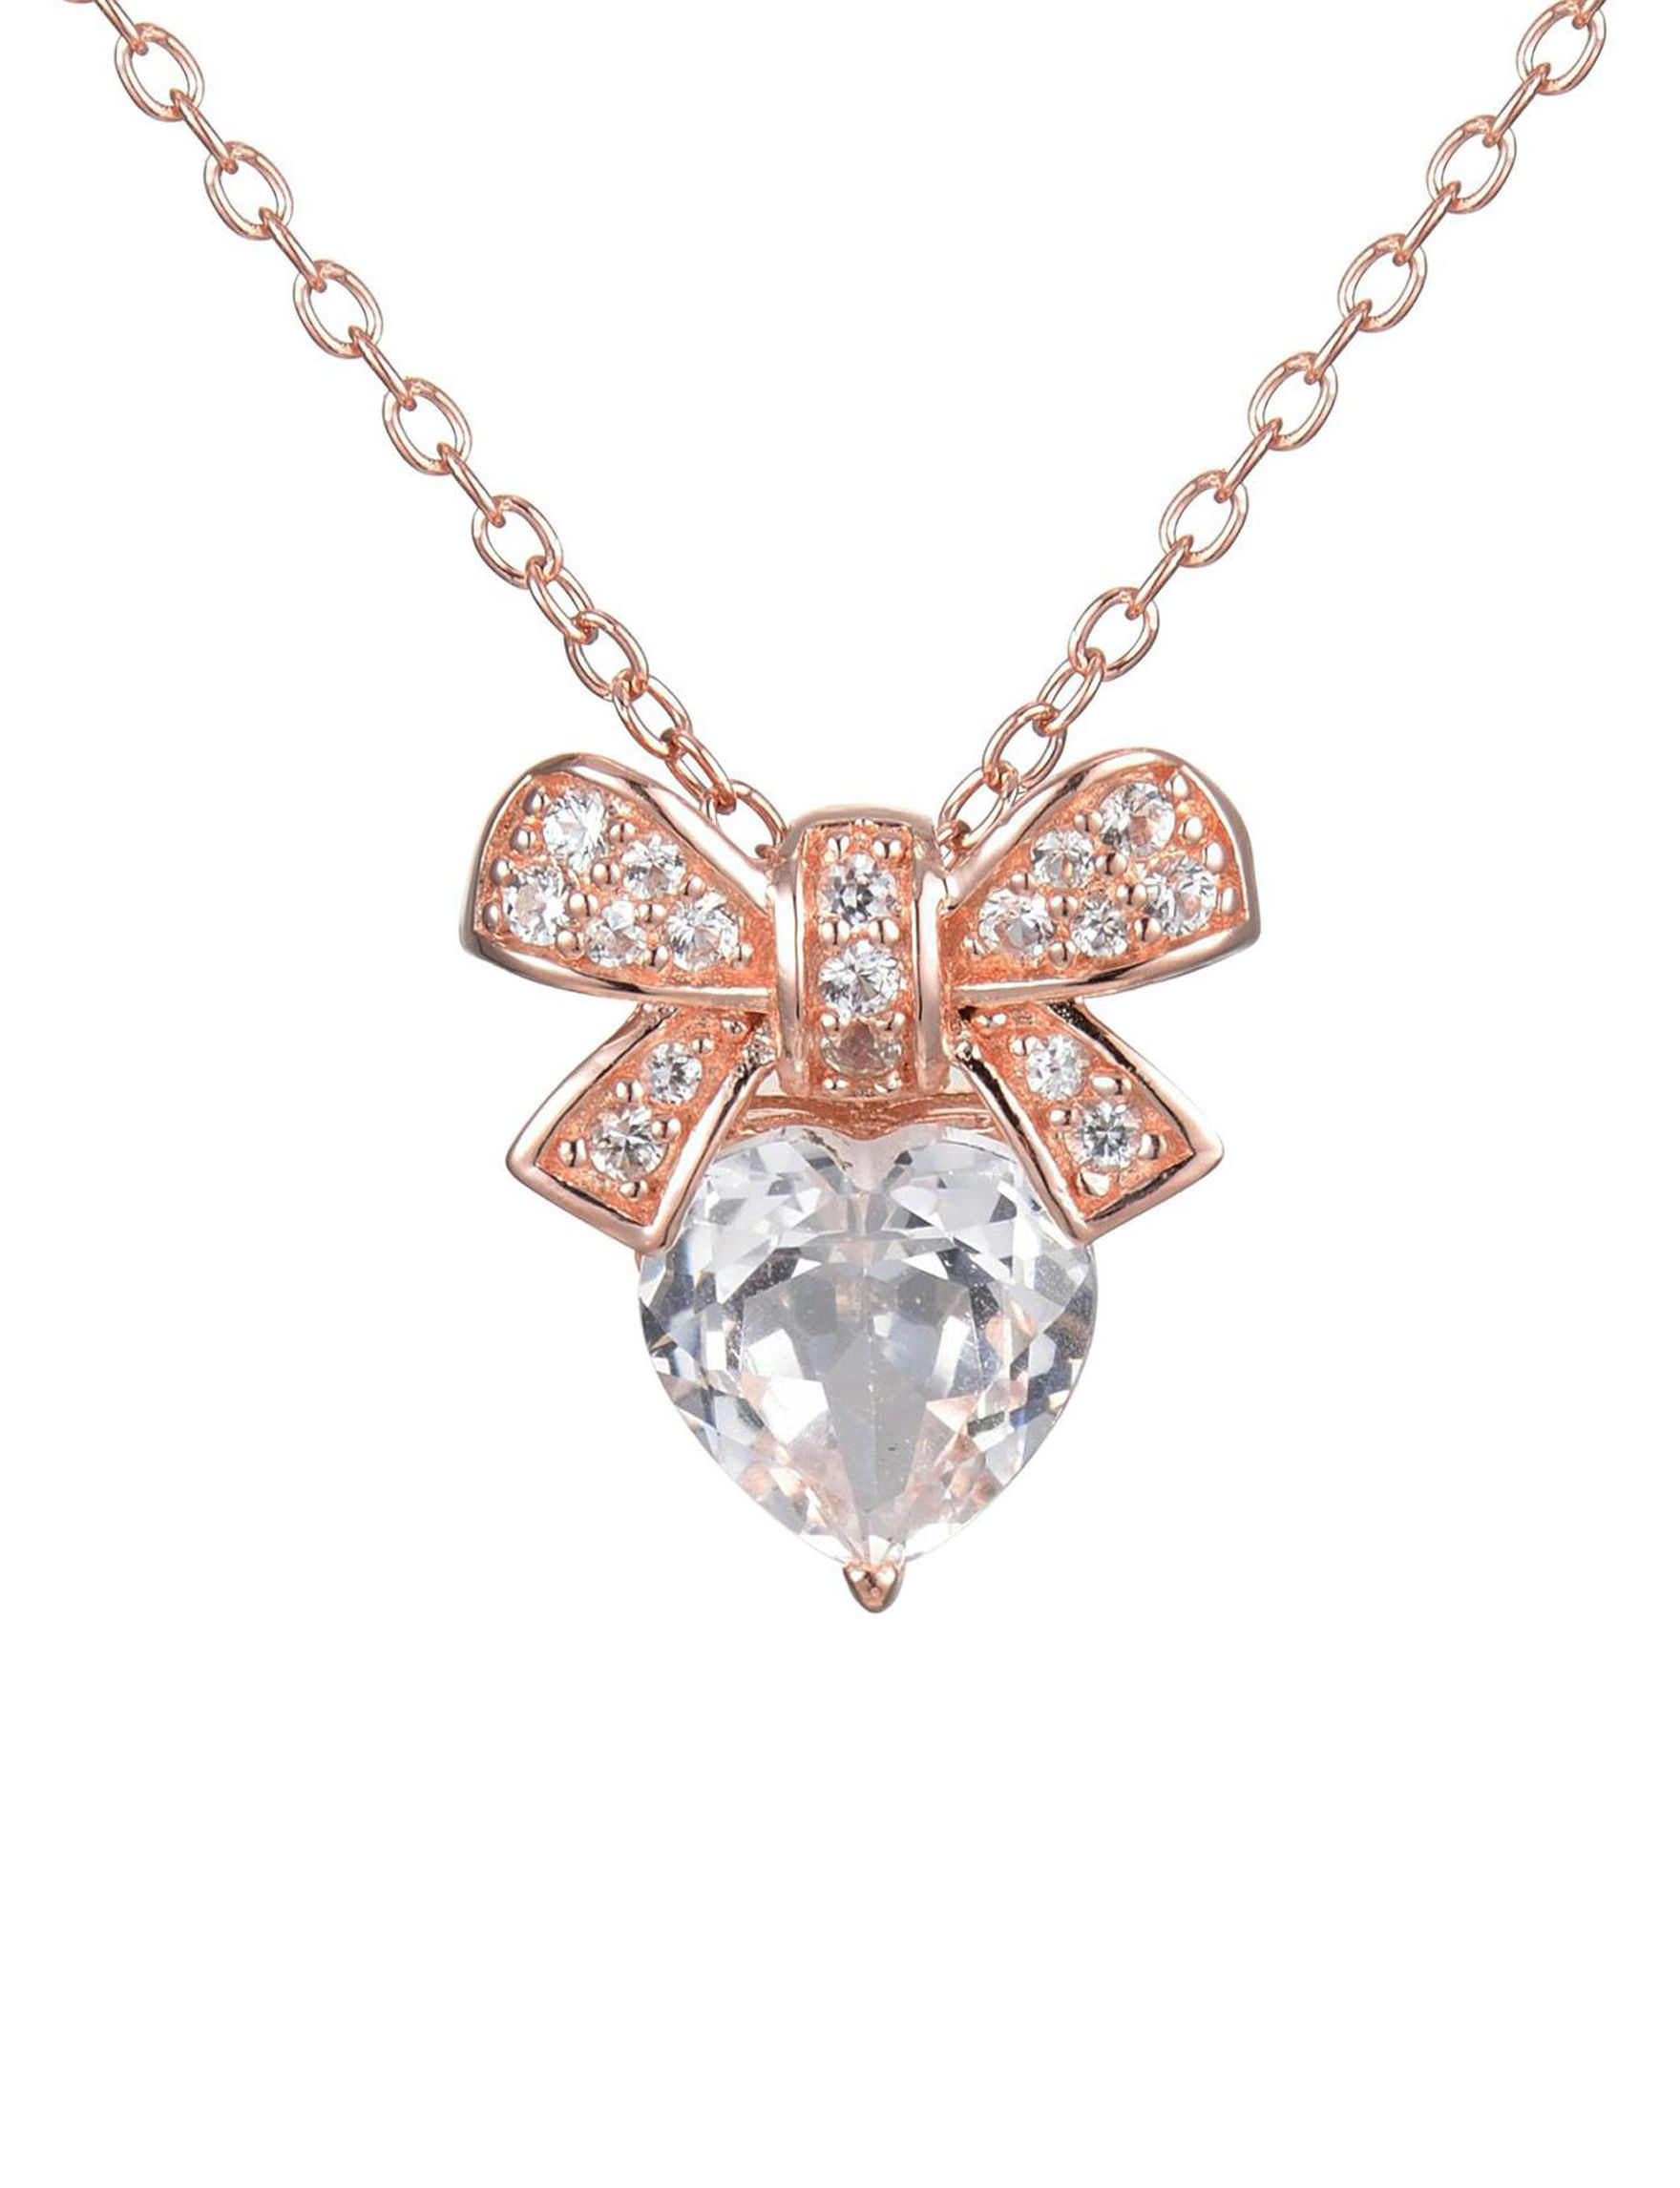 PAJ INC. Rose Gold Necklaces & Pendants Fine Jewelry